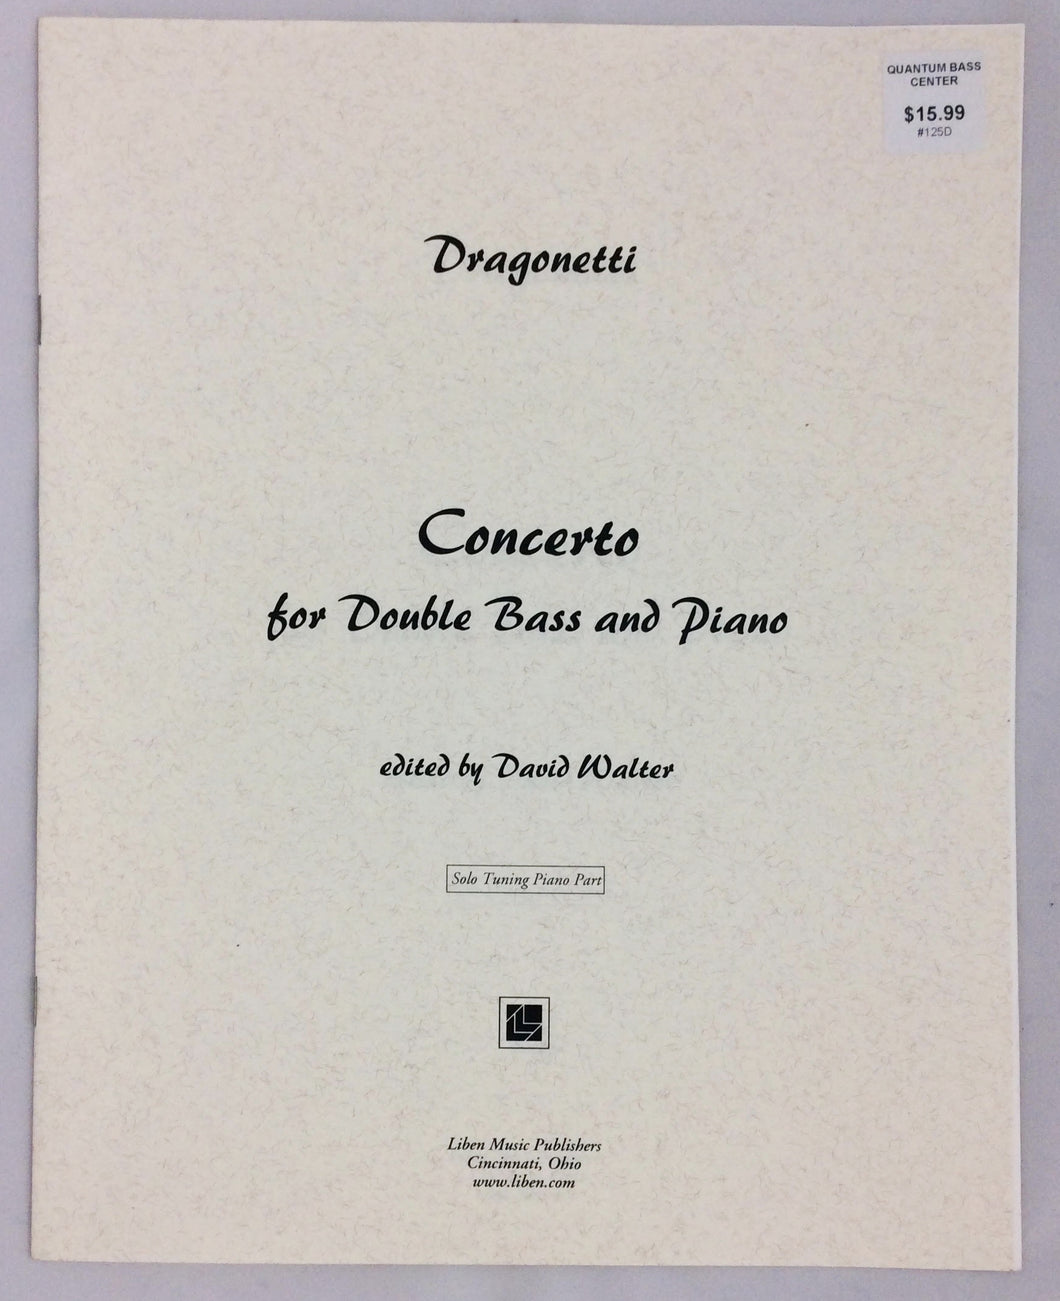 Dragonetti, D. - Concerto - Solo Tuning Piano Part